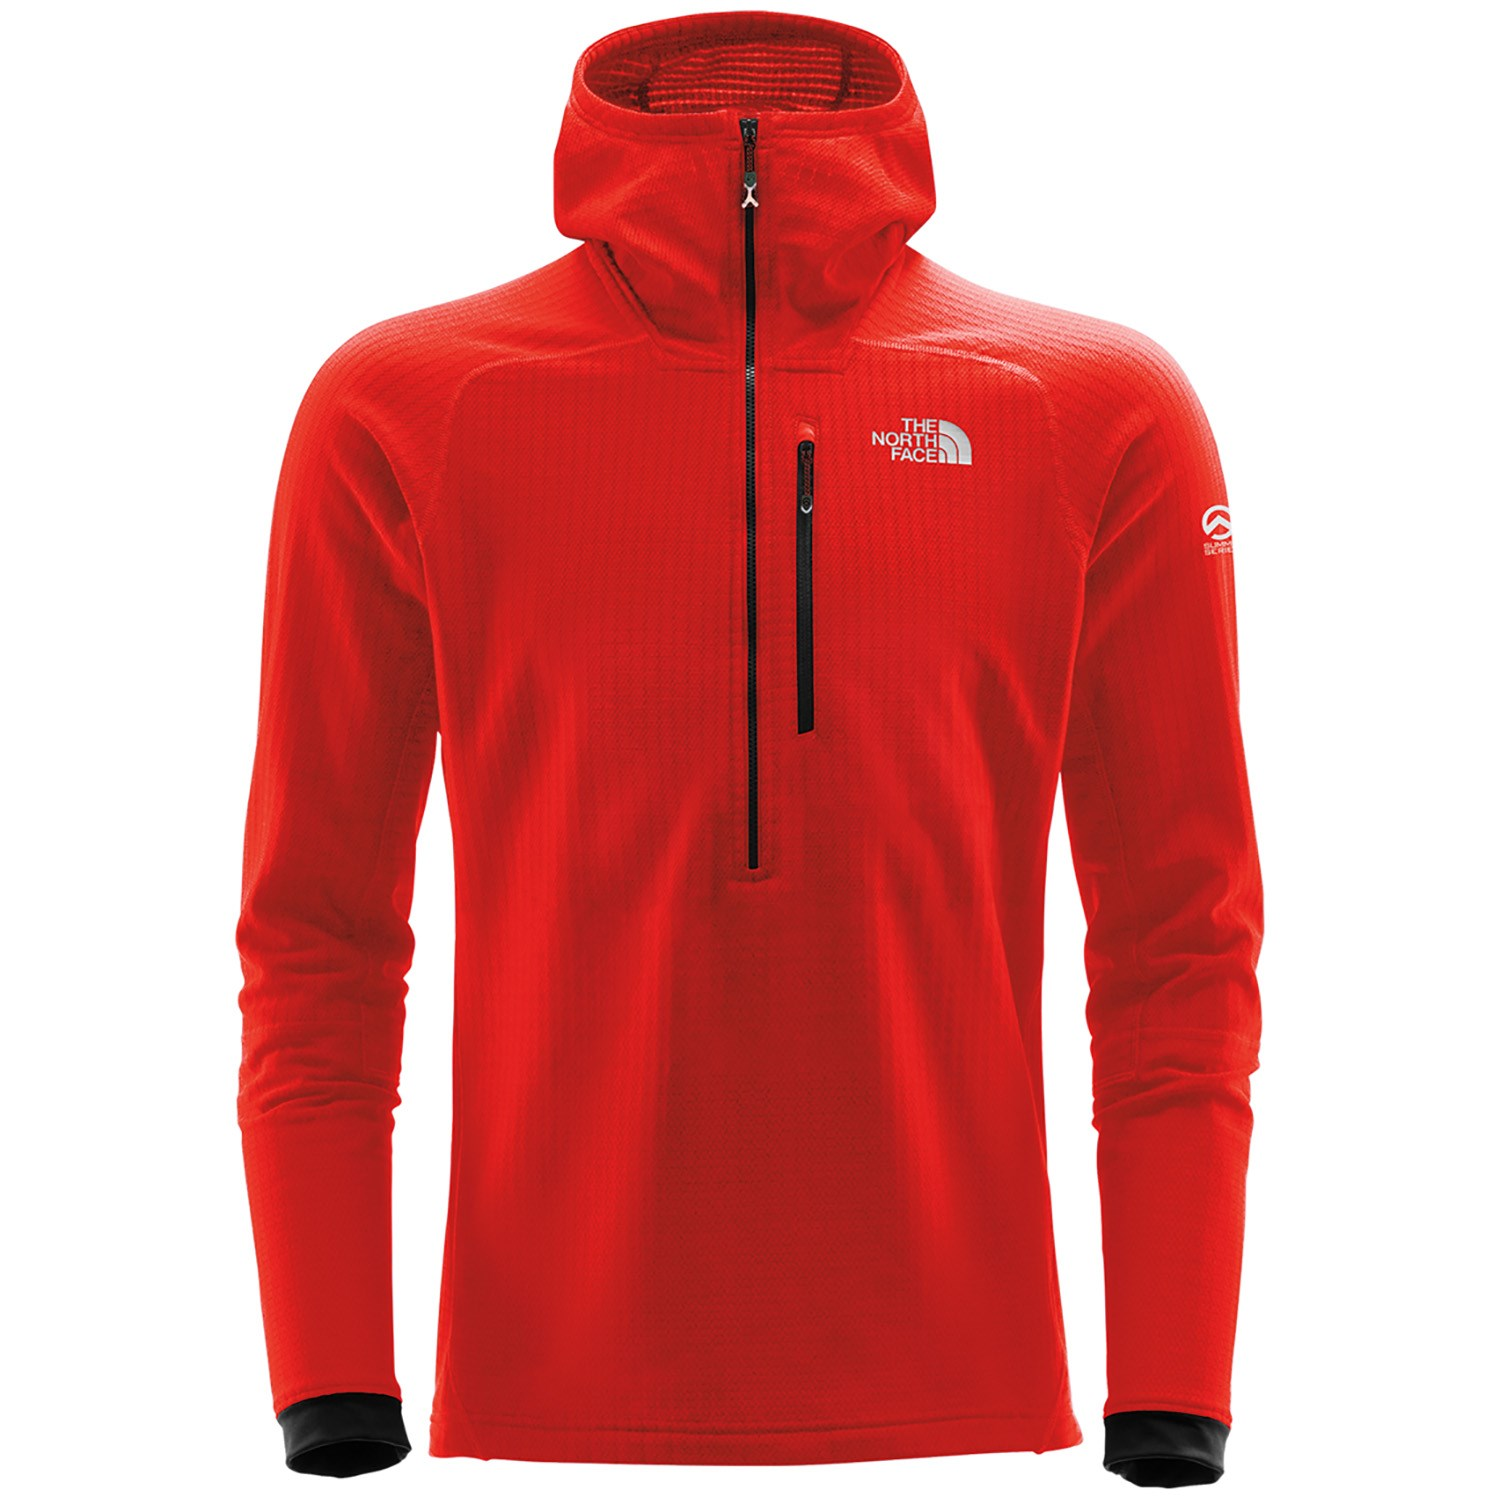 6f58fa5a6 The North Face Summit L2 Fuseform™ Grid Fleece 1/4 Zip Hoodie